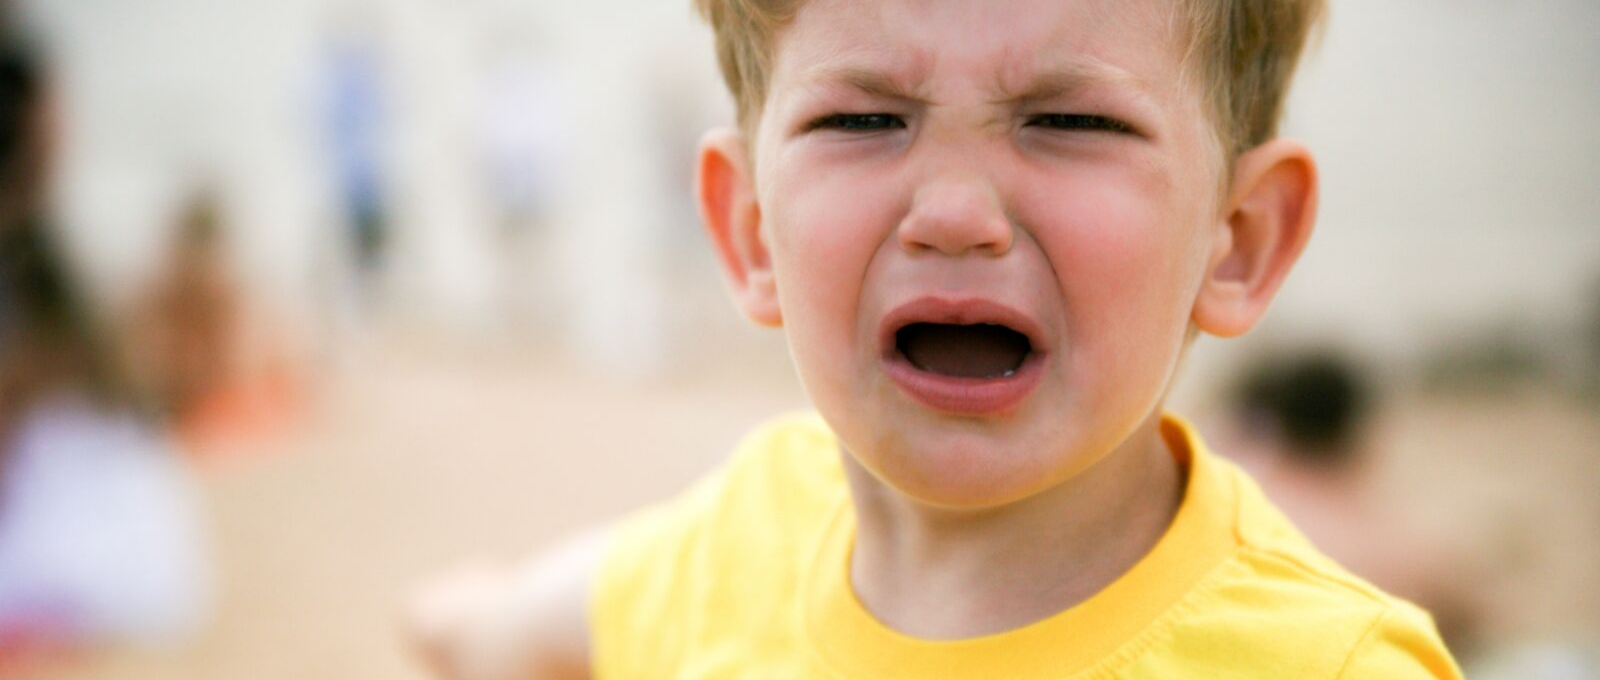 Child crying who needs an emotion coach to help handle his feelings